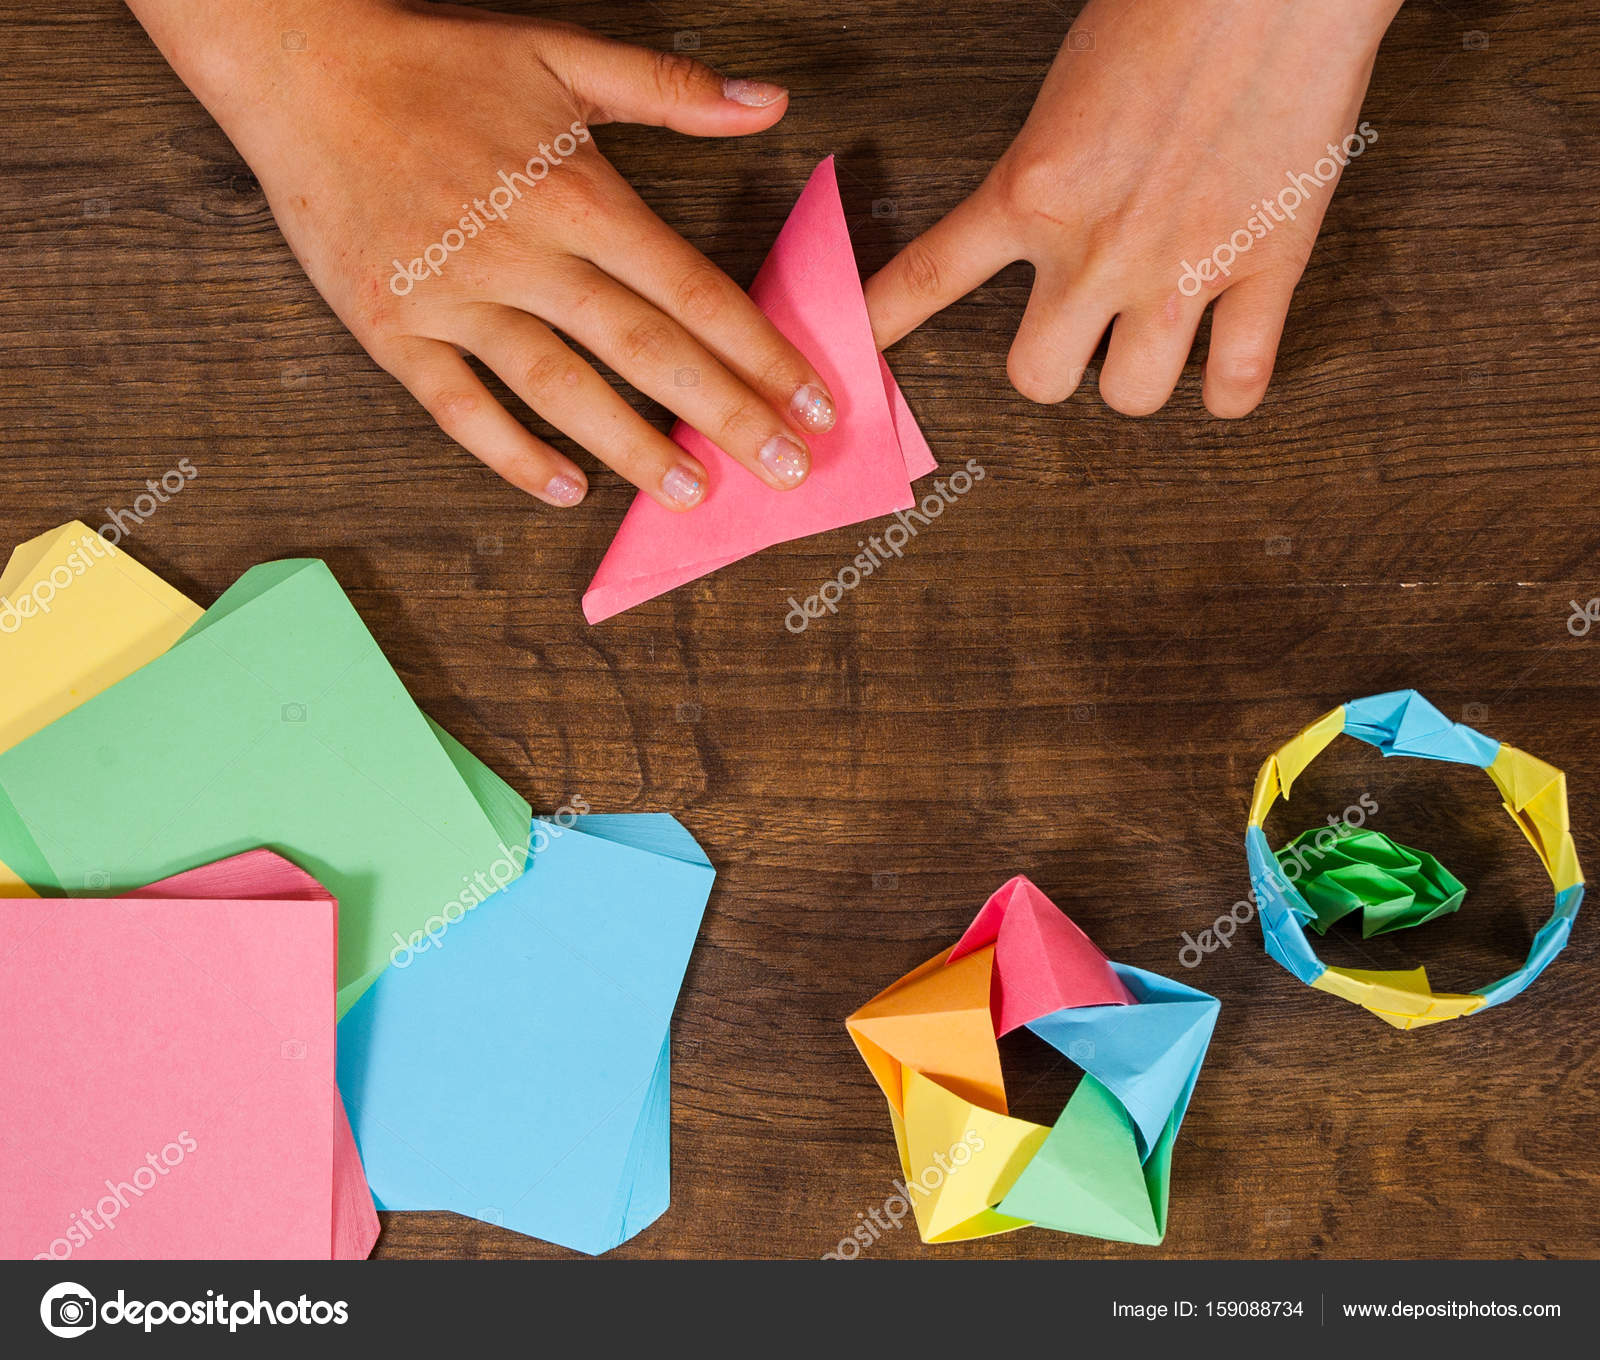 Childrens Creativity Made Of Paper Origami Crafts Handicrafts For Children Handmade On Wooden Table Top View Photo By Semenovp